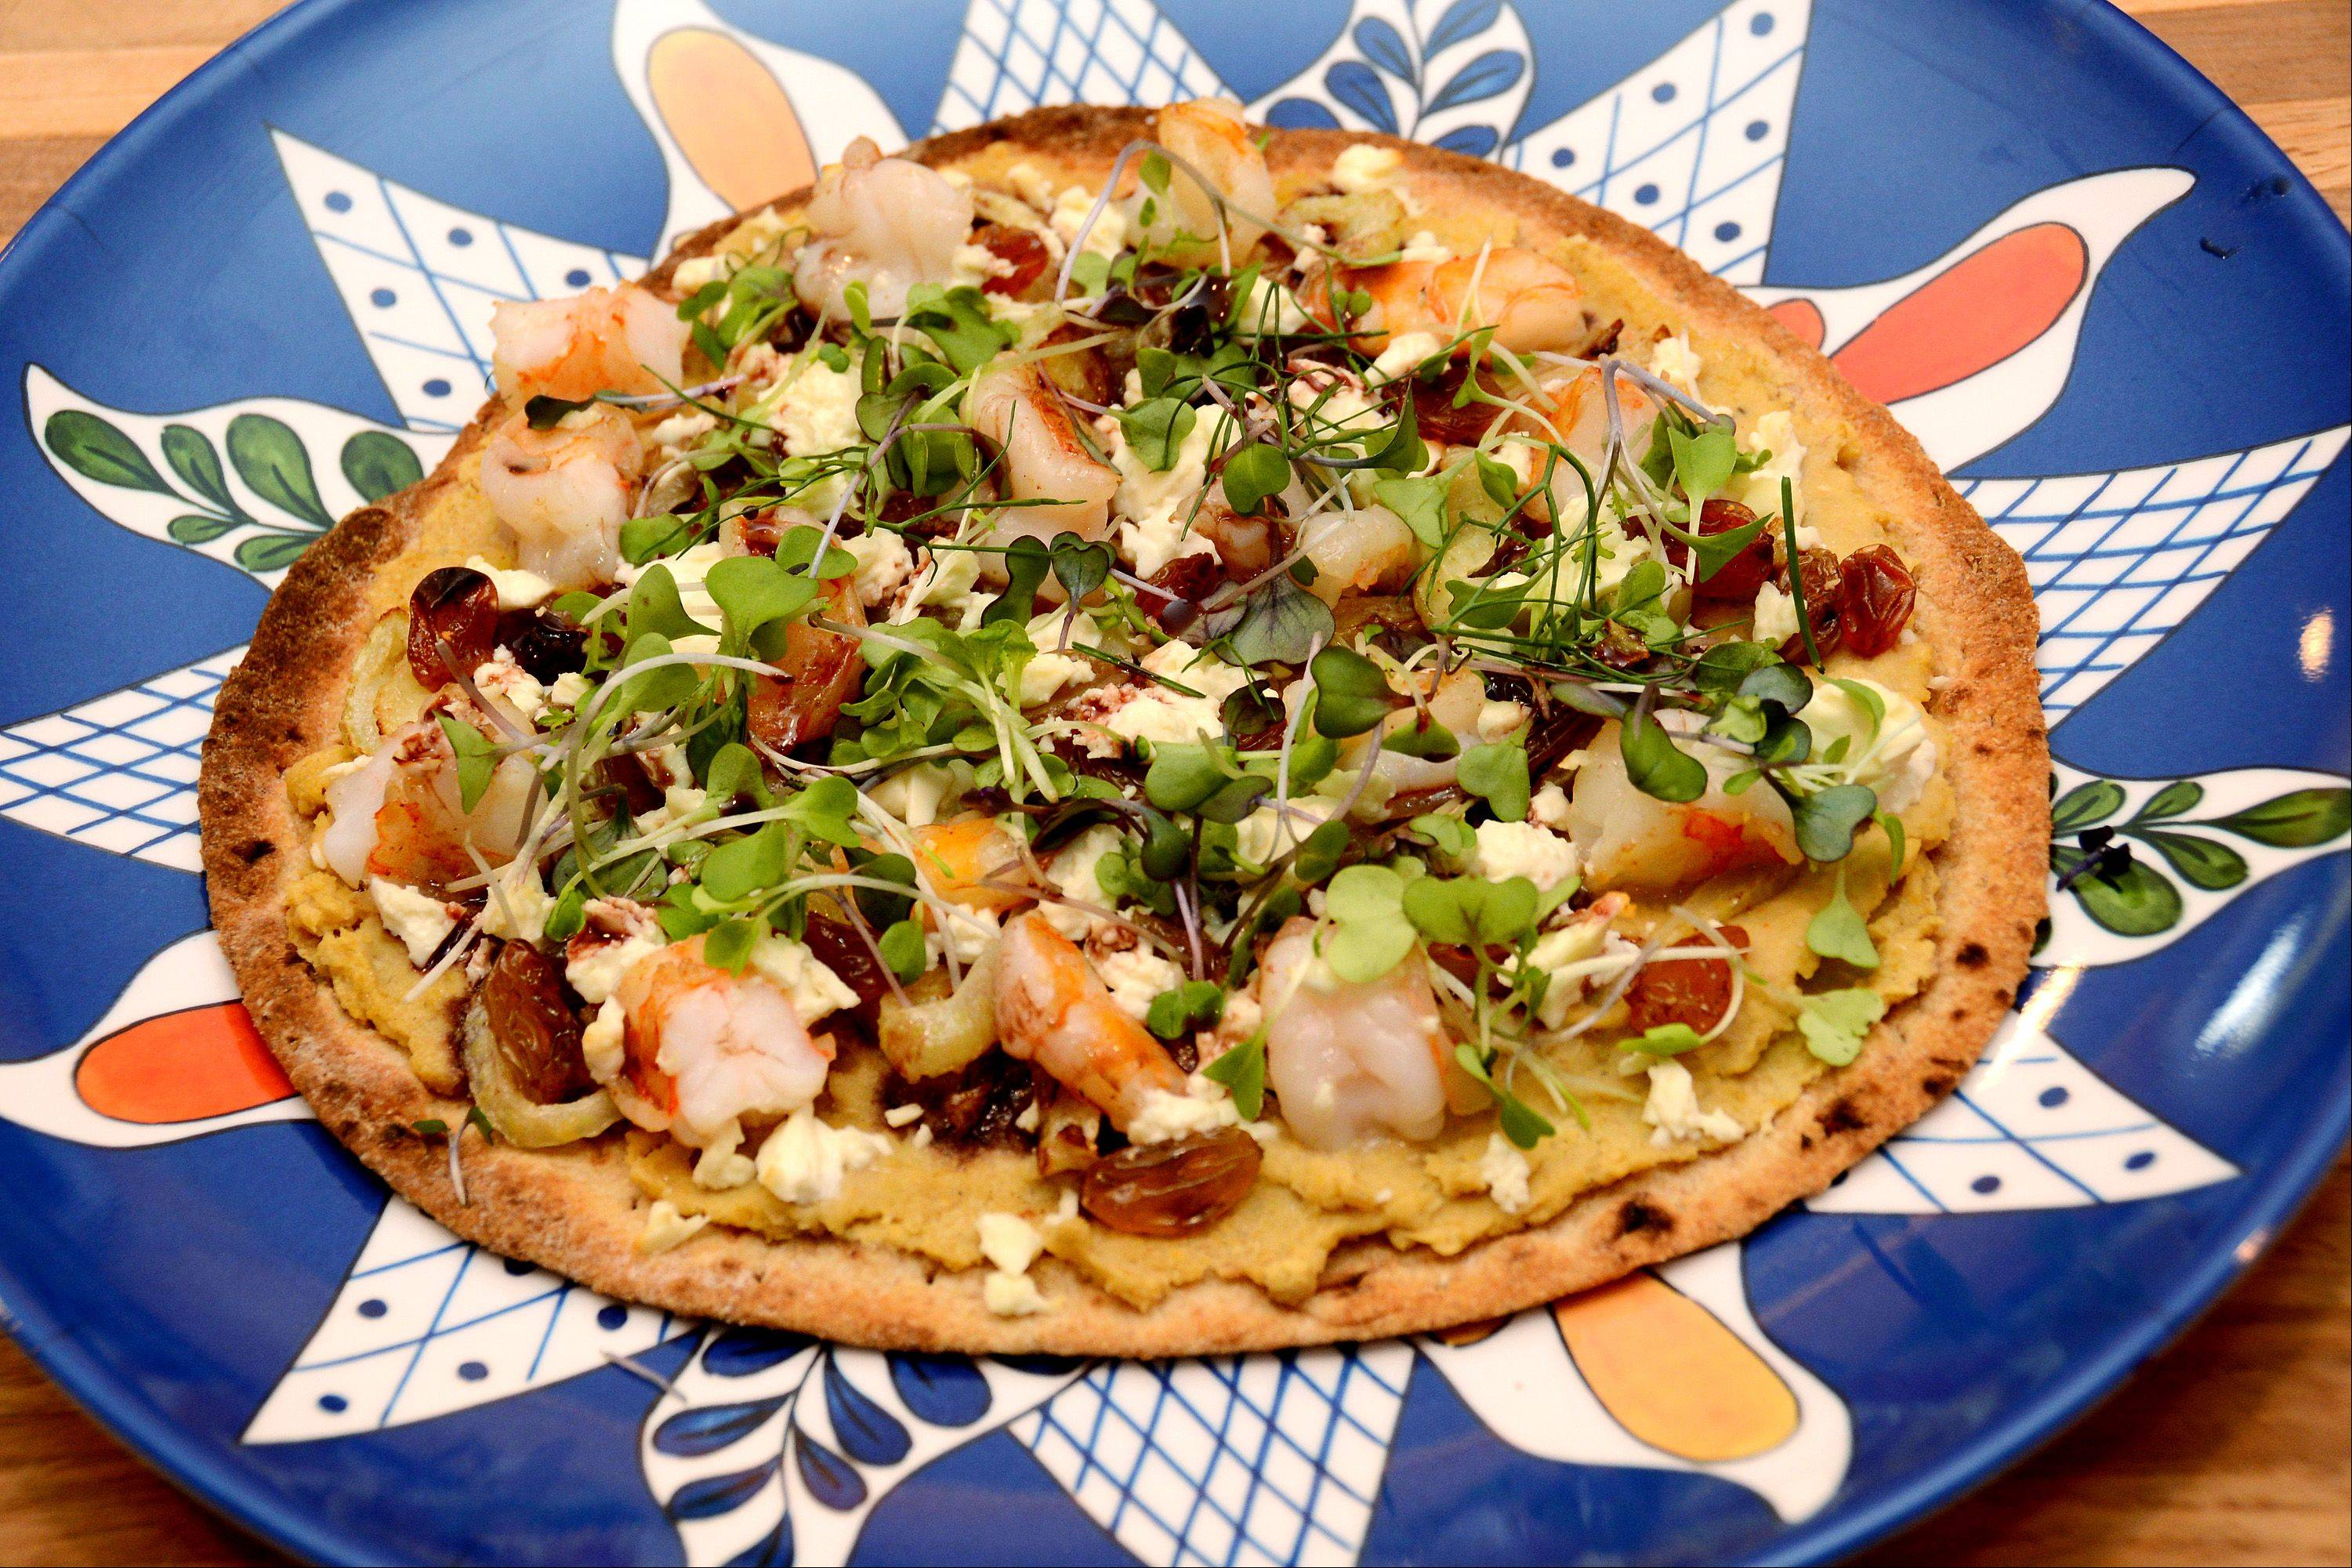 Lori Motyka created a hearty flatbread pizza with sardines, chickpeas (aka garbanzo beans), fennel and golden raisins.